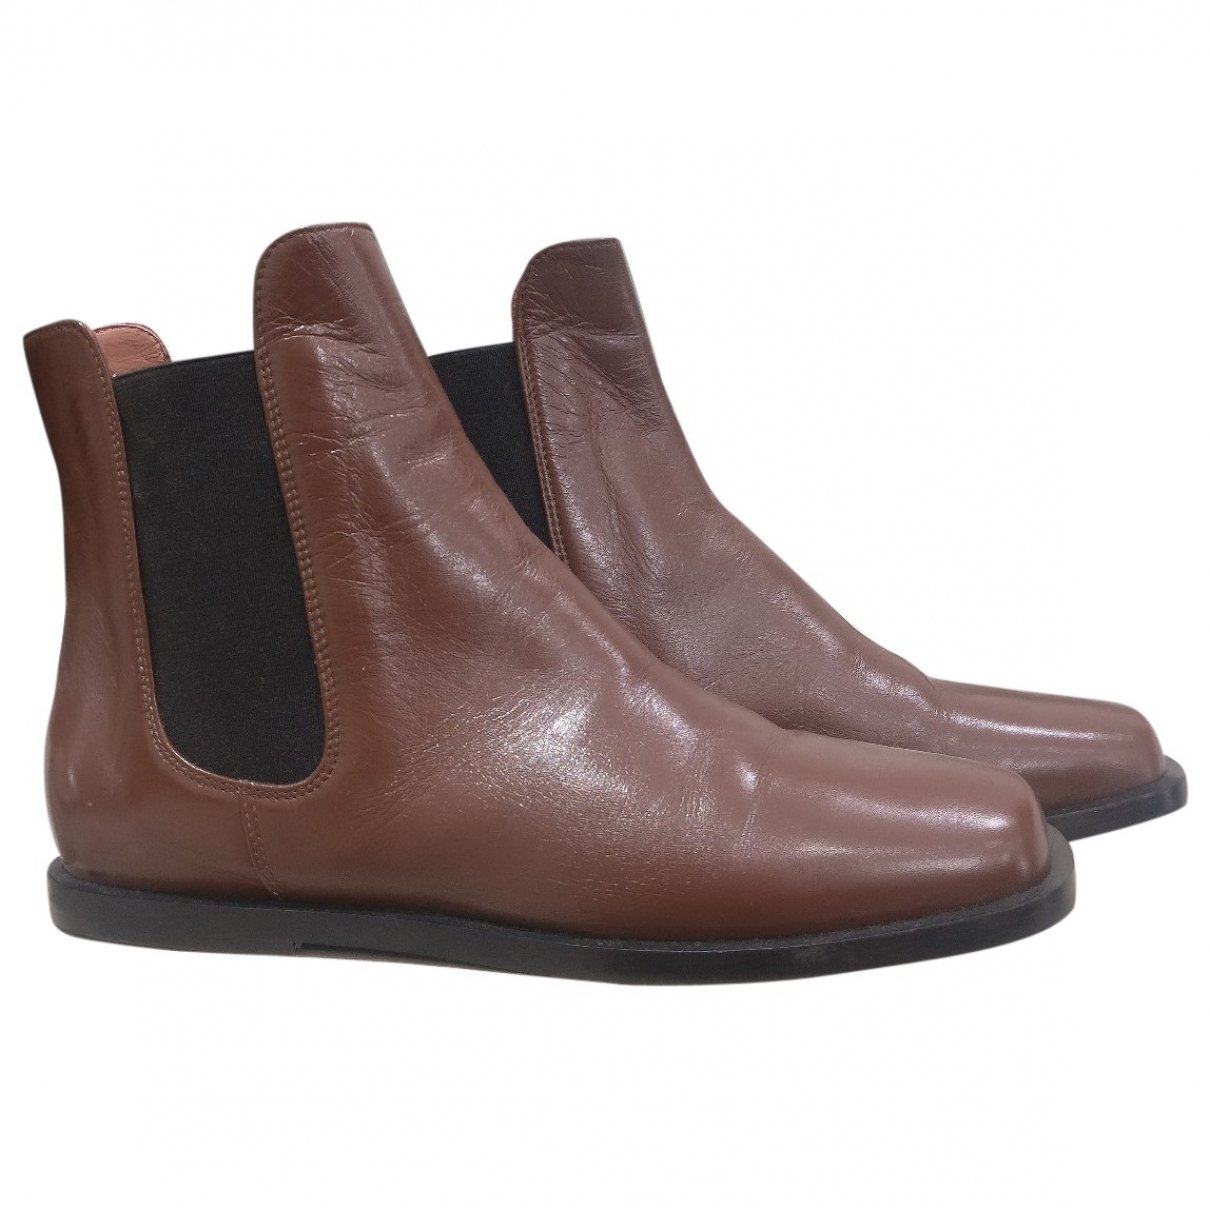 Marni \N Brown Leather Boots for Women 37 EU